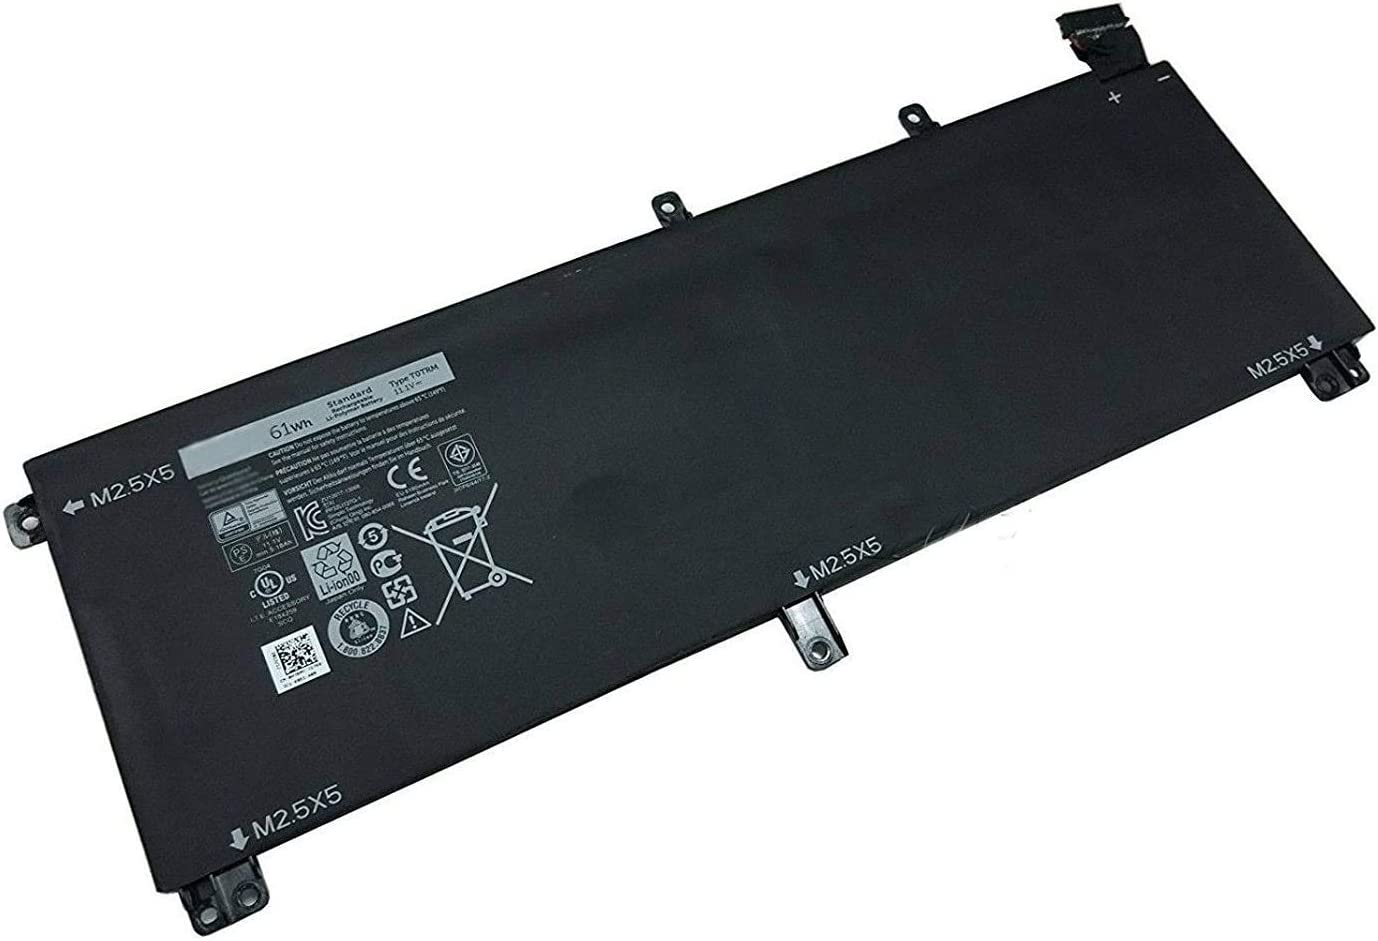 Fully T0TRM Replacement Laptop Battery for Dell XPS 15 9530 Precision M3800 H76MV 7D1WJ 245RR 6cell - 11.1V 61WH